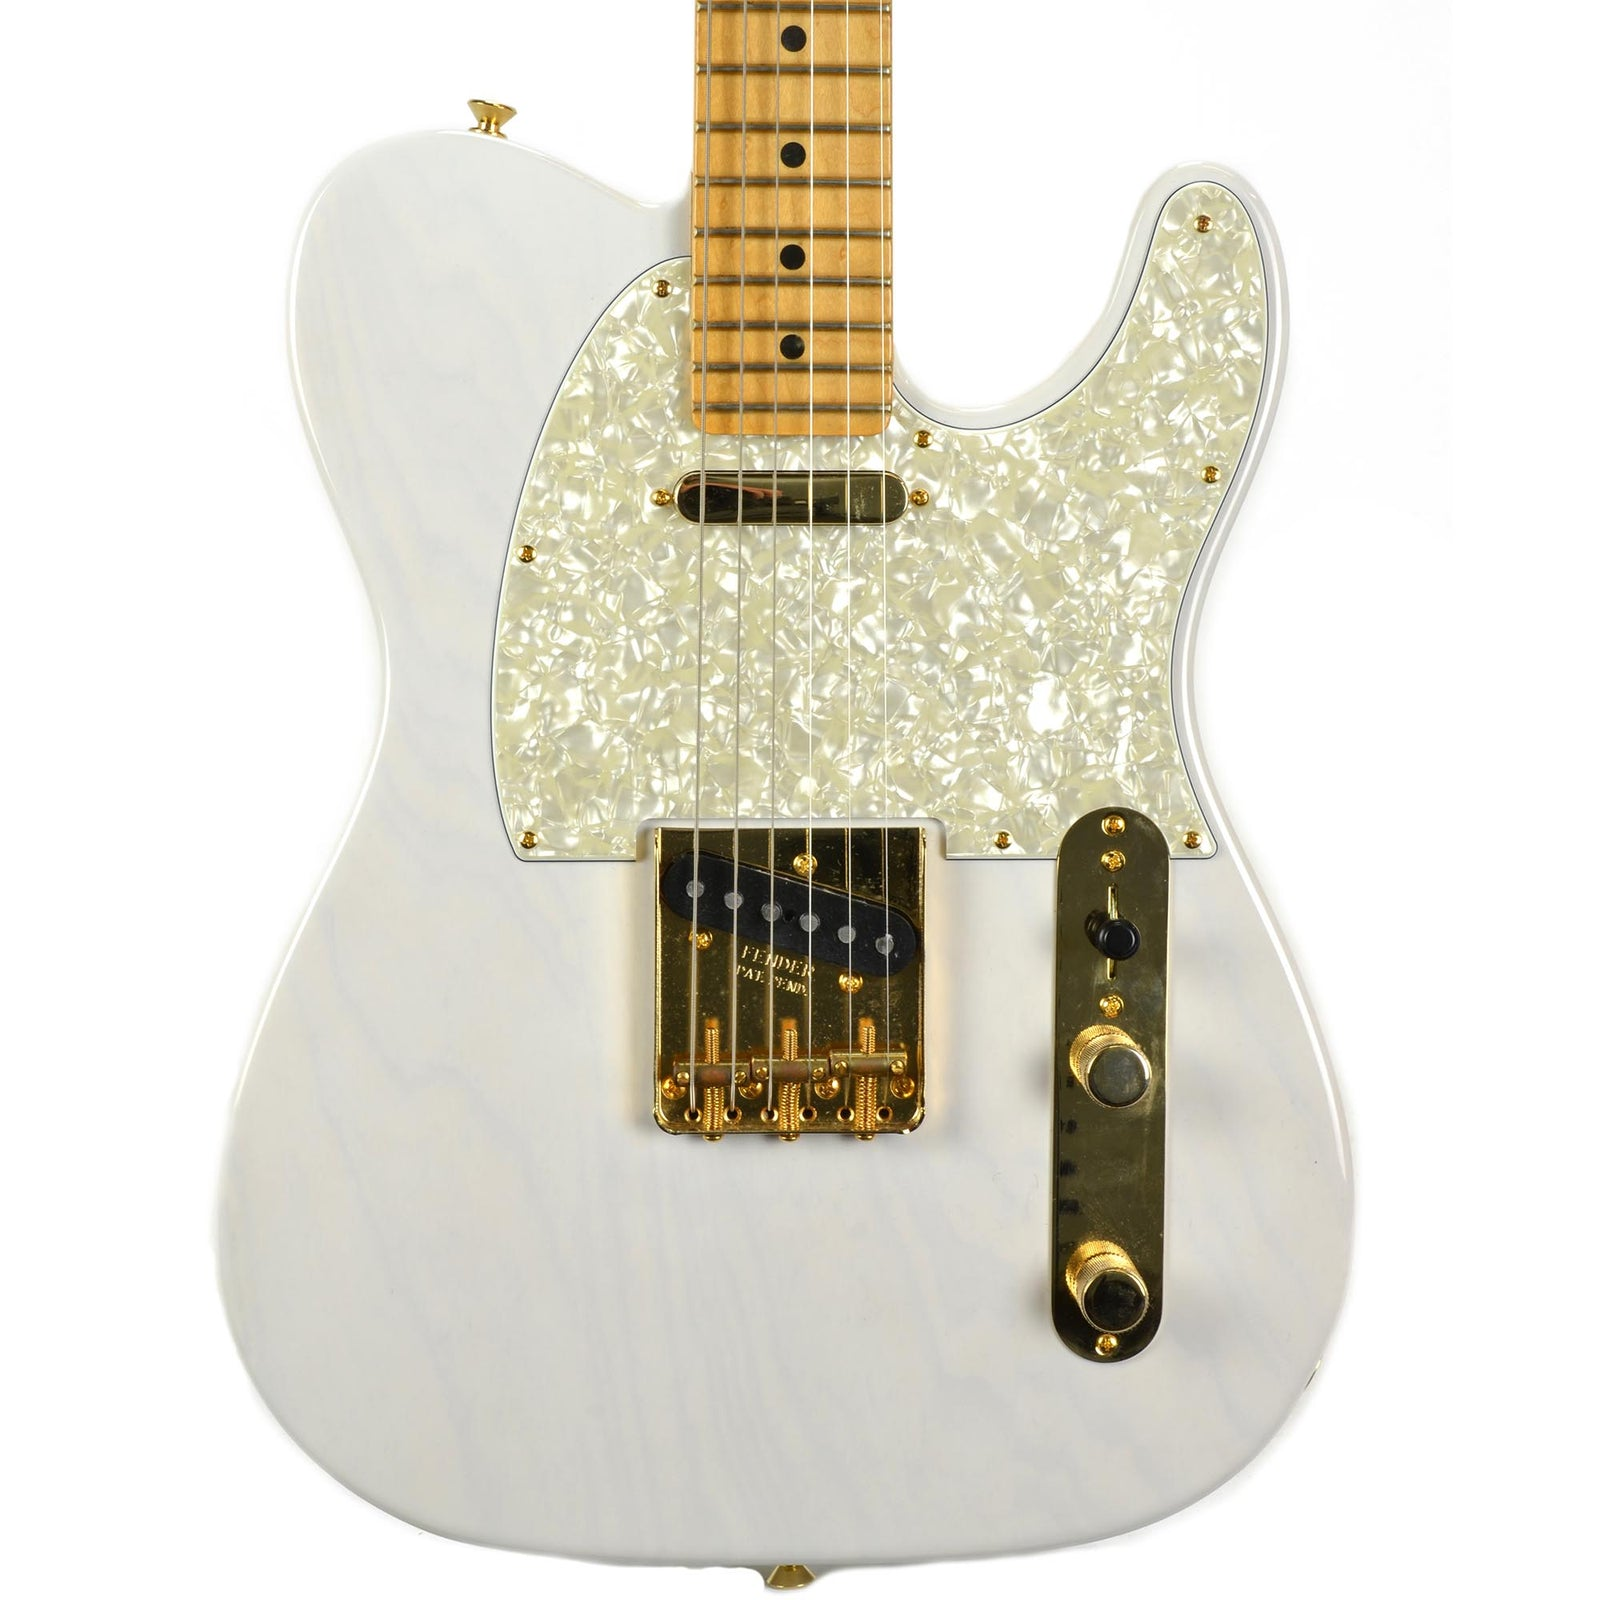 Fender Limited Edition Select Light Ash Telecaster - White Blonde - Used